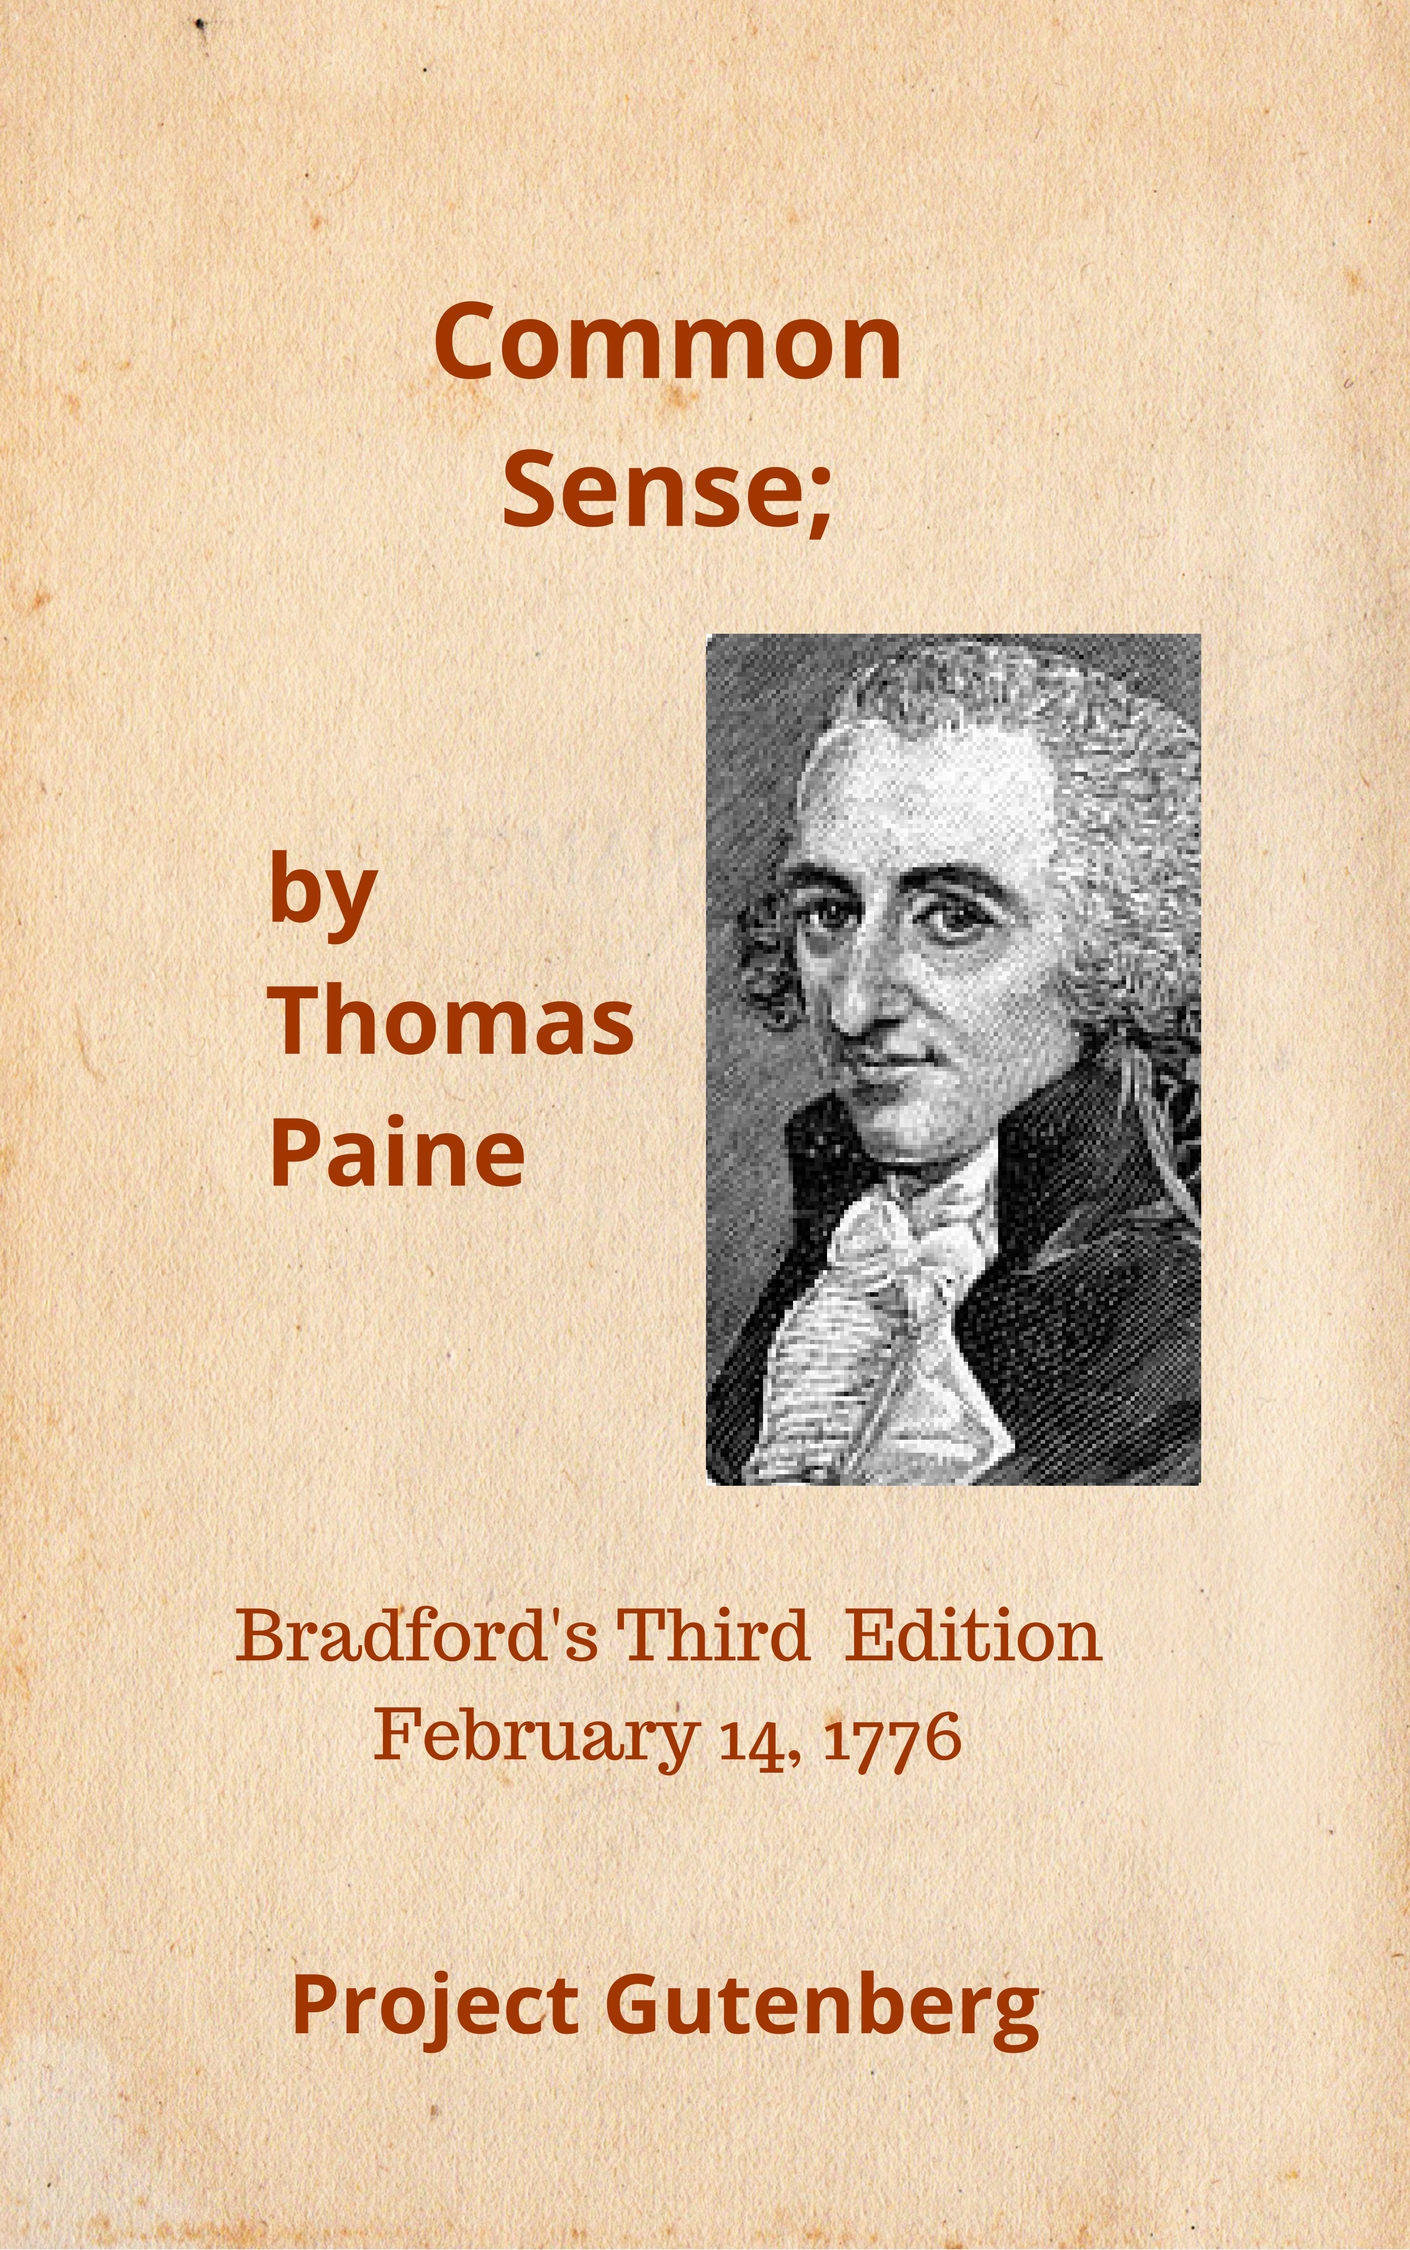 why was paine unwilling to be reconciled with britain